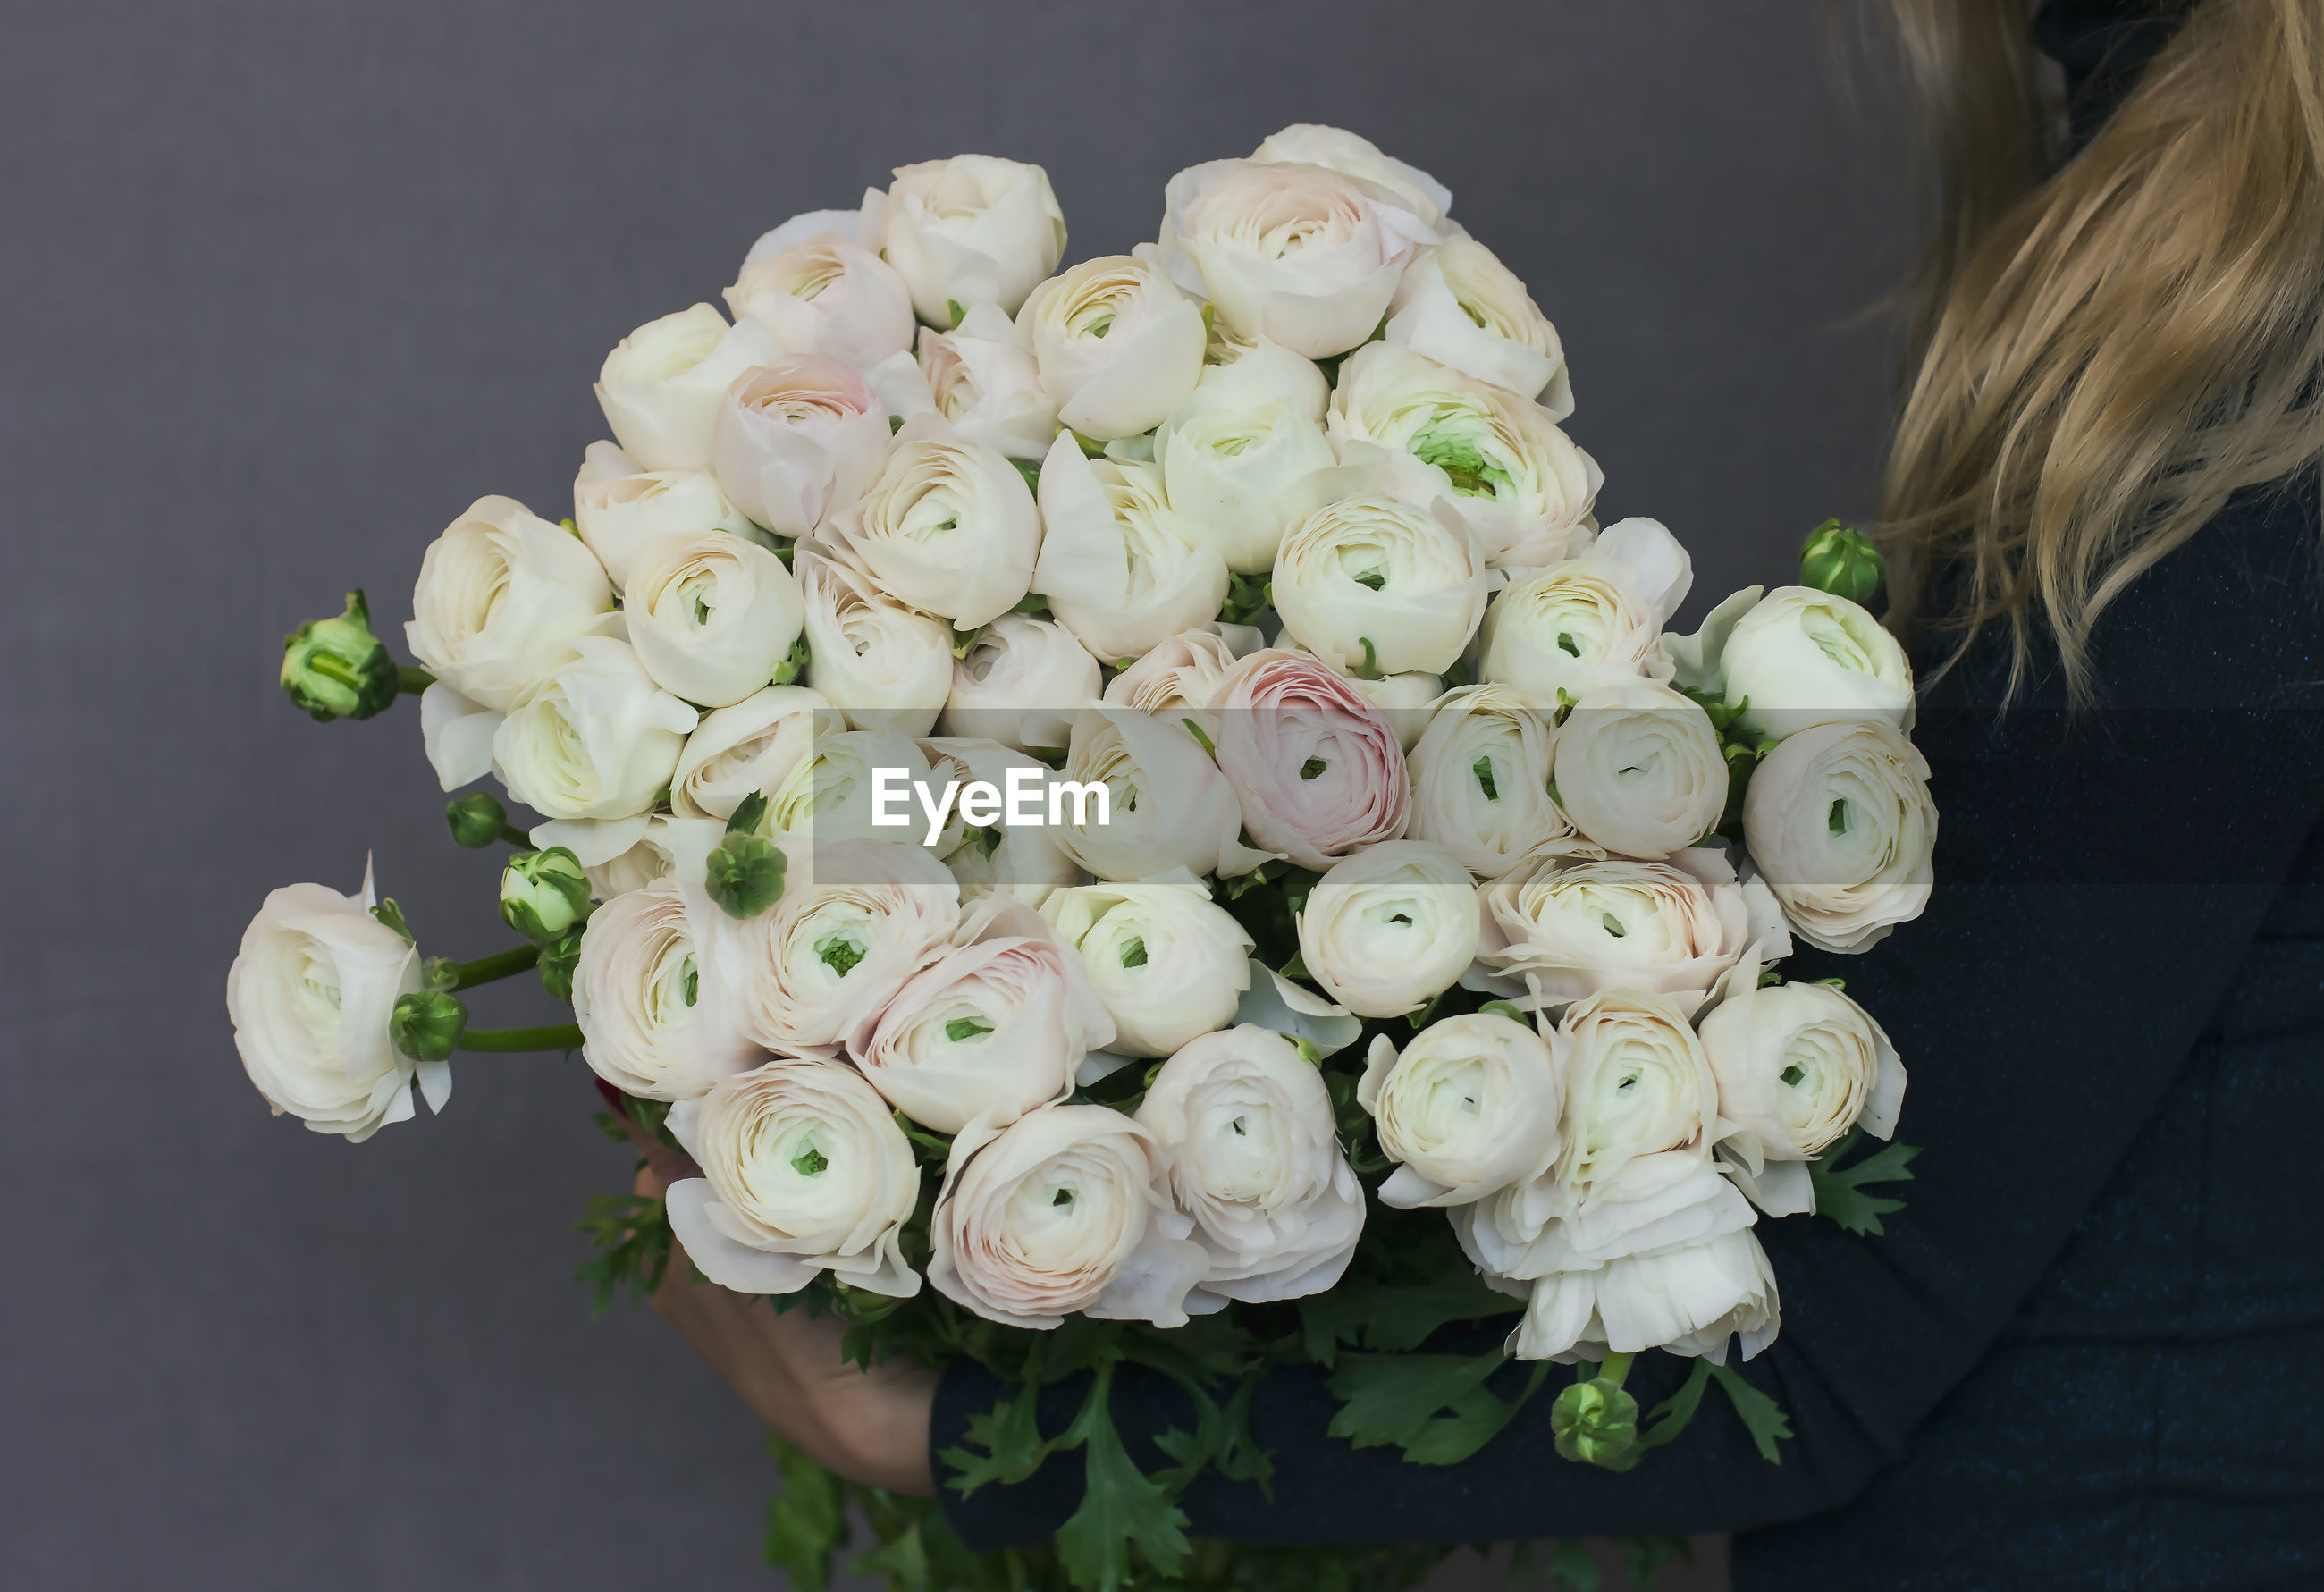 HIGH ANGLE VIEW OF BOUQUET OF WHITE ROSE